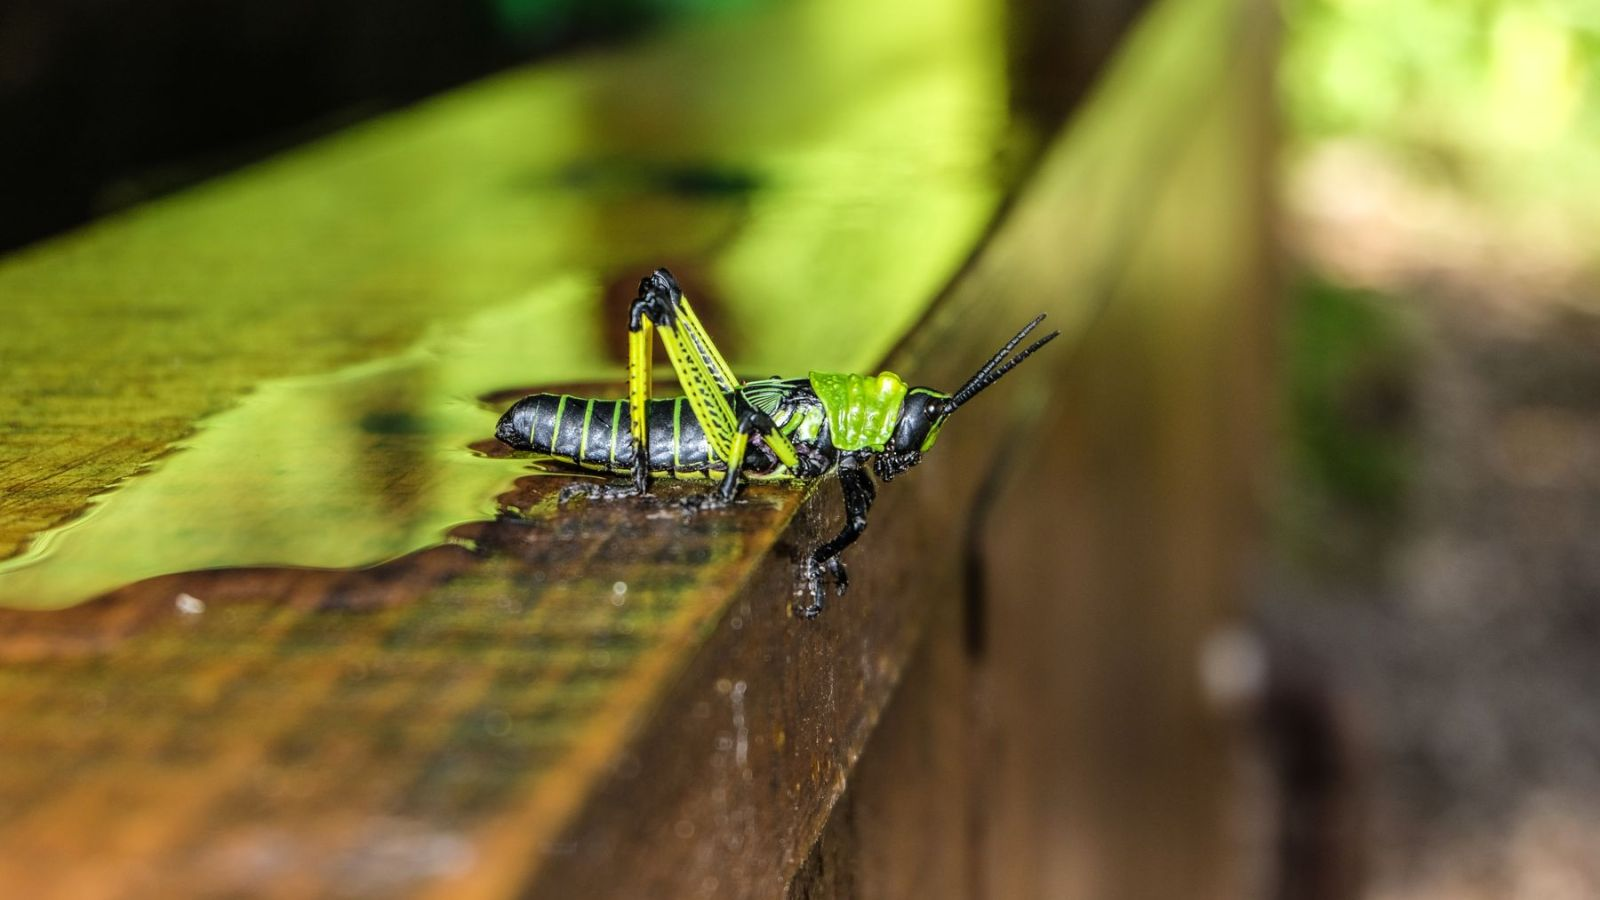 a photo of a grasshopper in south africa.